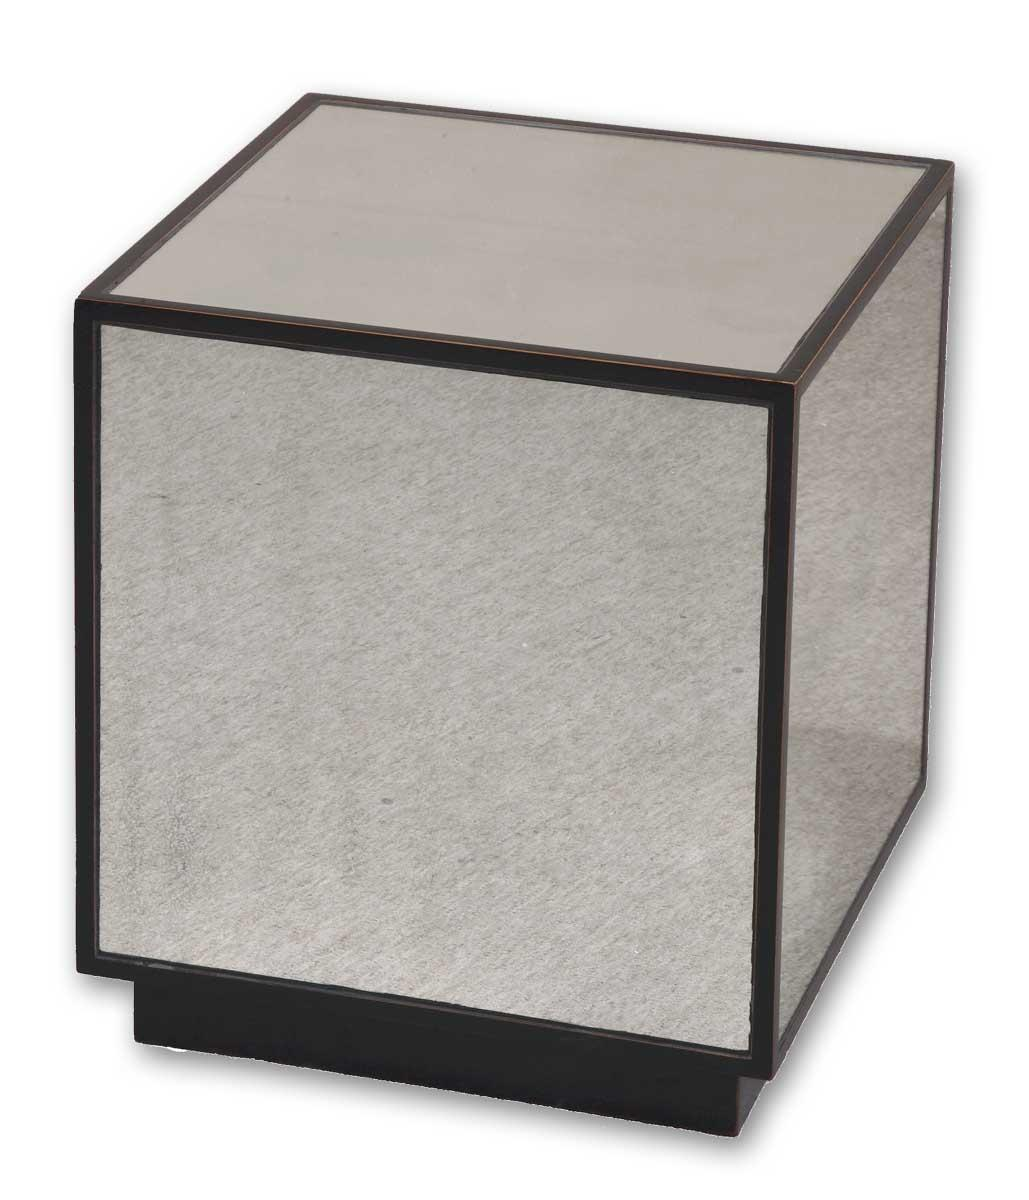 Uttermost Accent Furniture Matty Mirrored Cube - Item Number: 24091